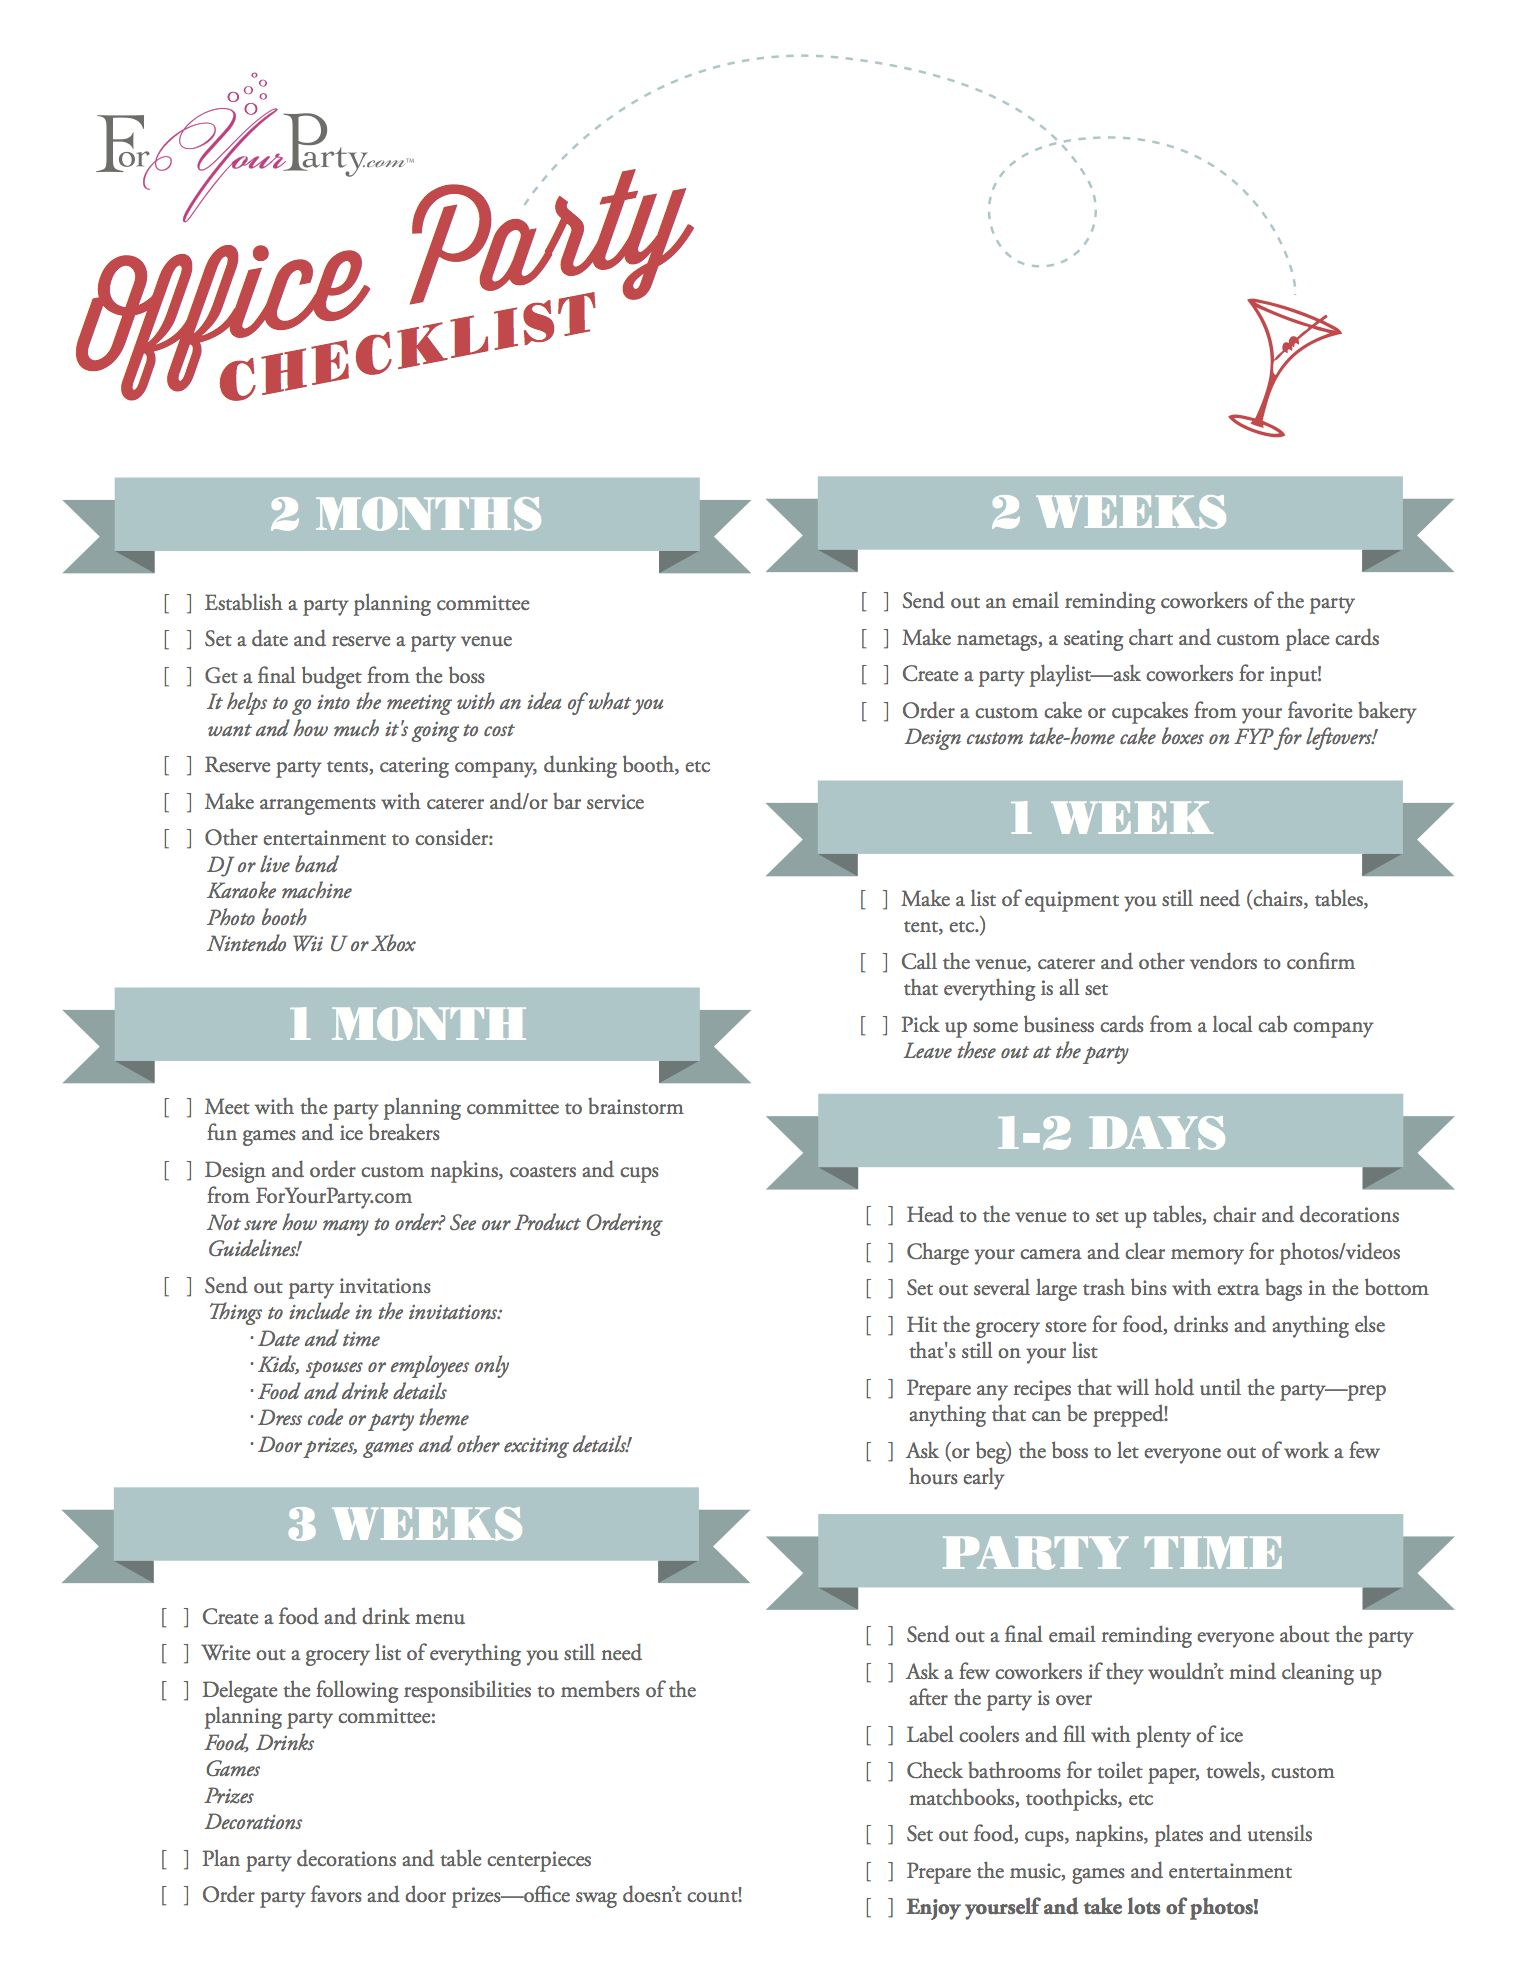 Plan your office holiday party right with our checklist! Order now ...